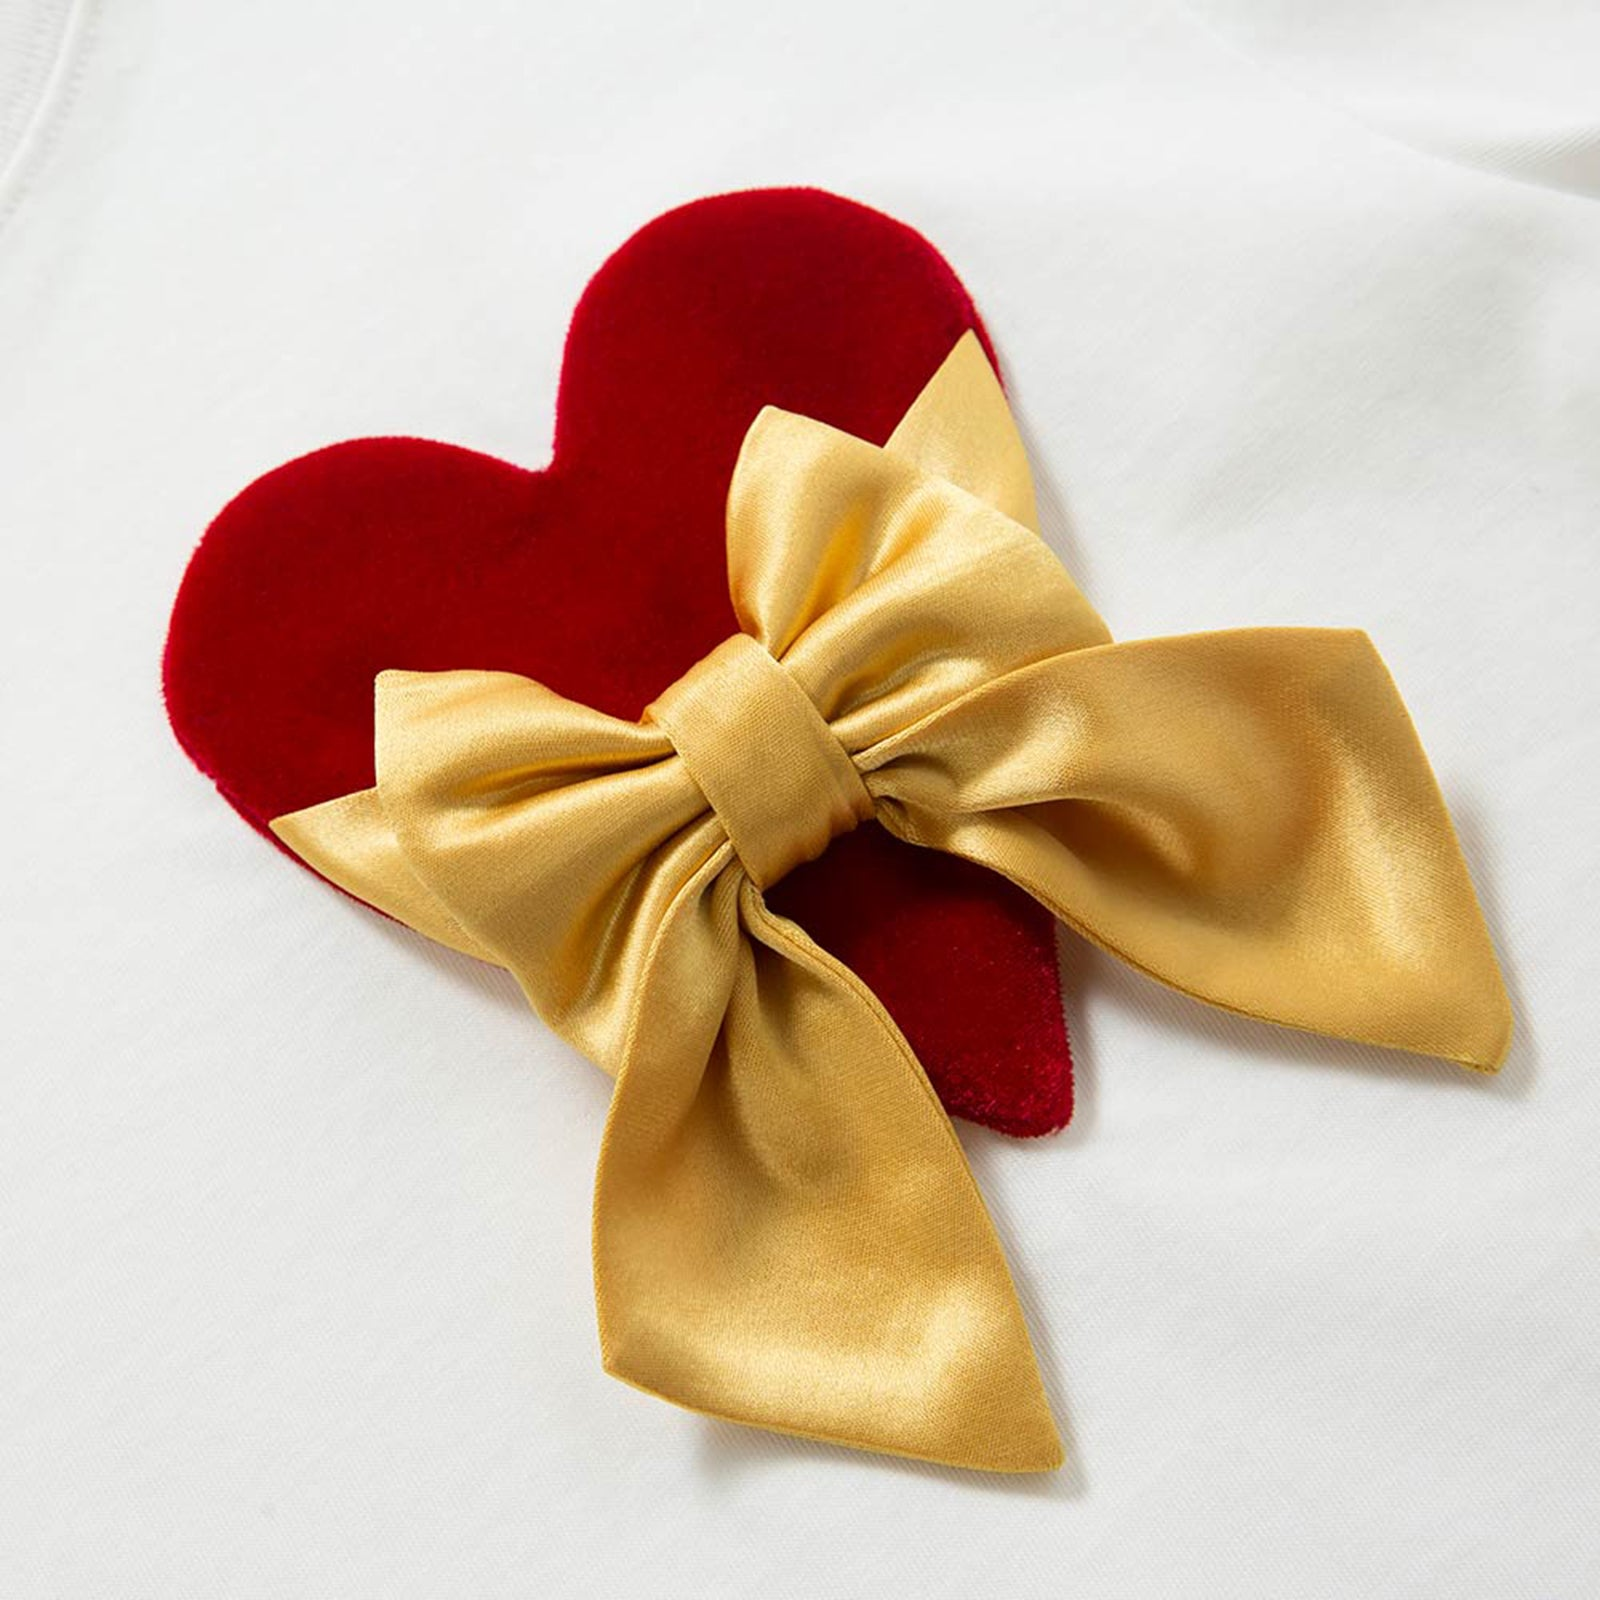 T-Shirt with Love Heart Motif